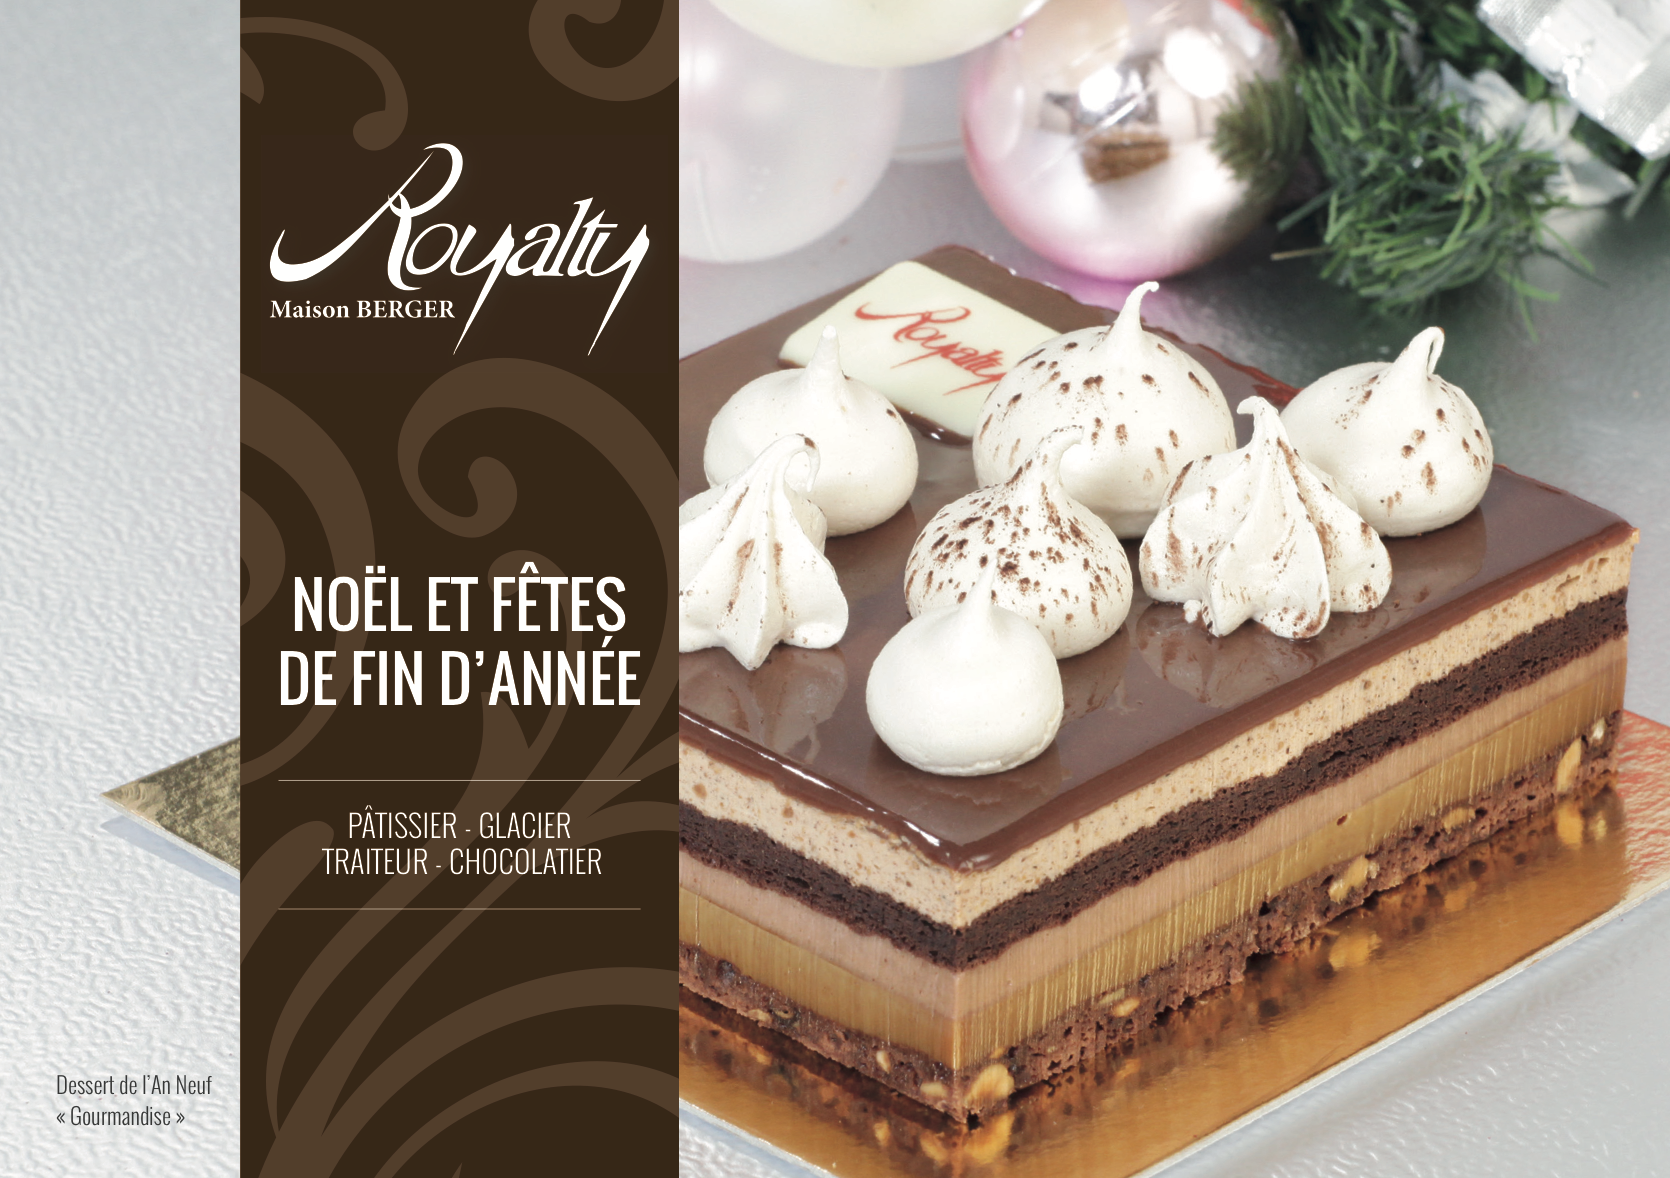 couverture_brochure_noel_2019_royalty